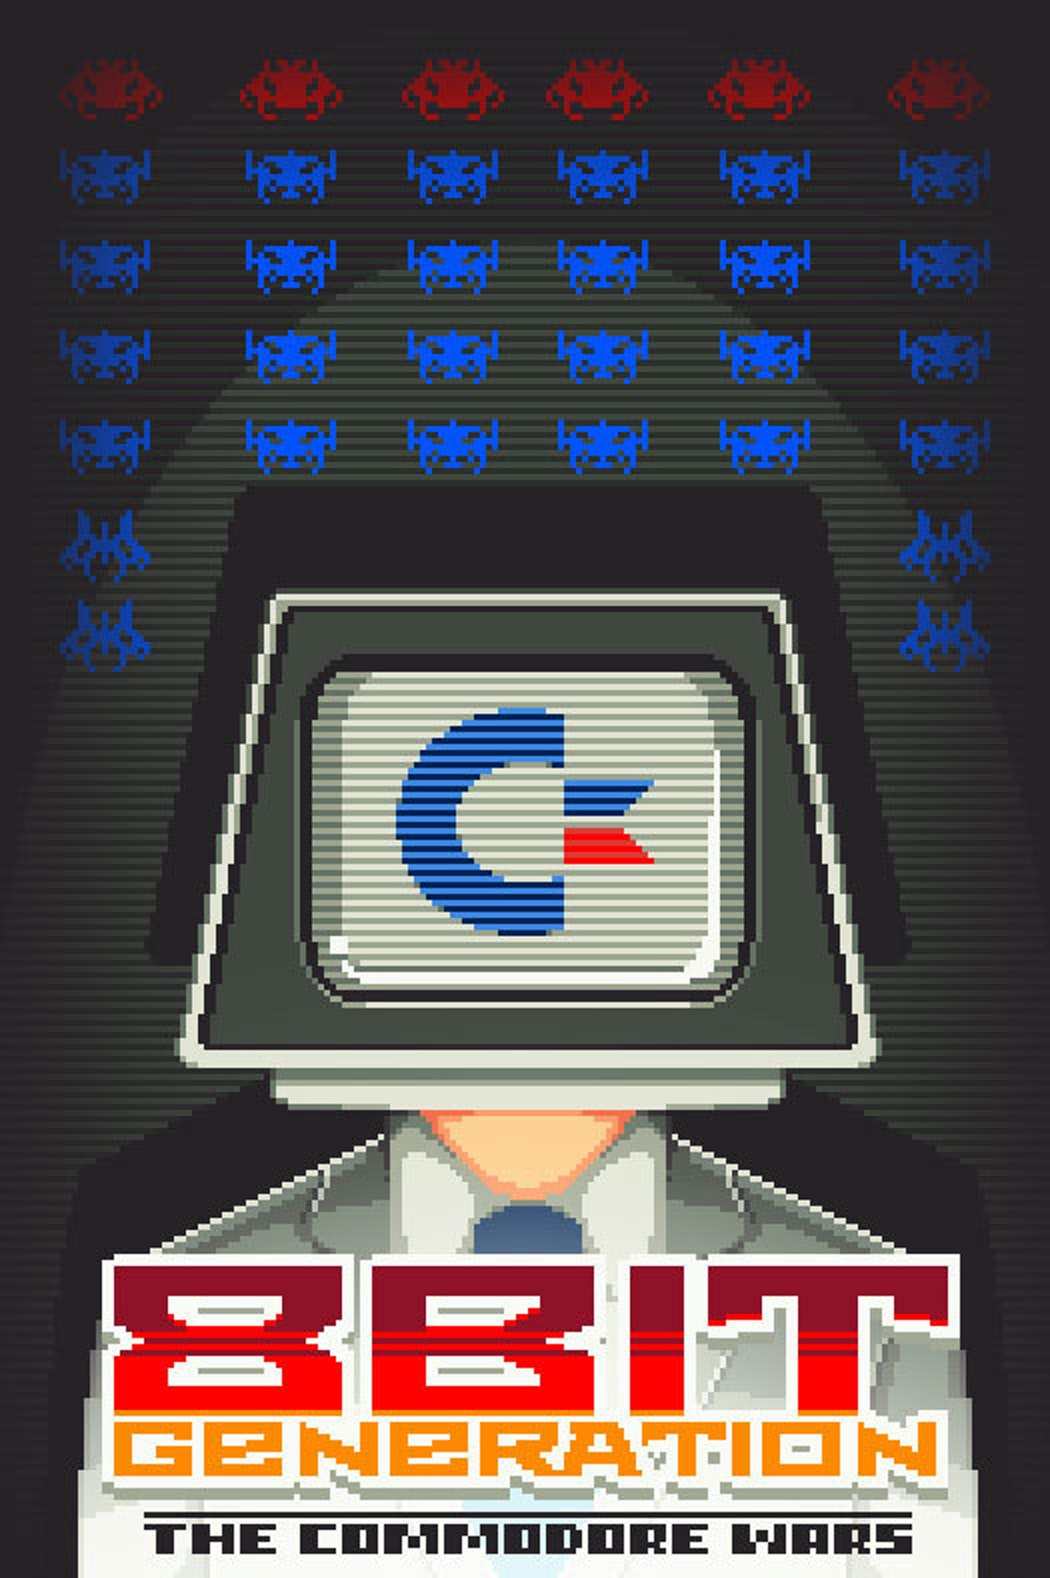 Exclusive premiere of '8 Bit Generation: The Commodore Wars' poster.